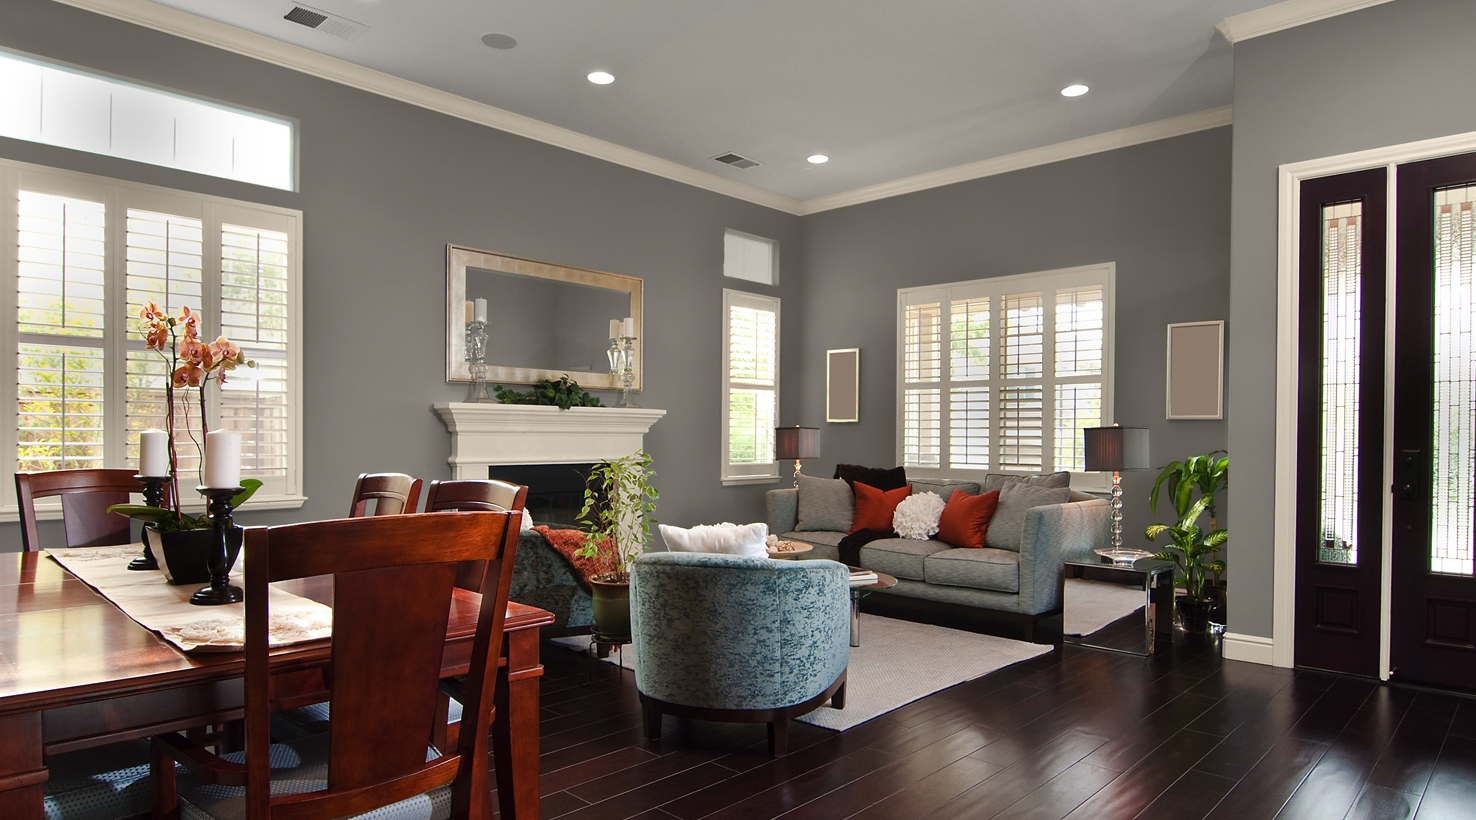 Sherwin Williams Functional Gray Living Room Opnodes